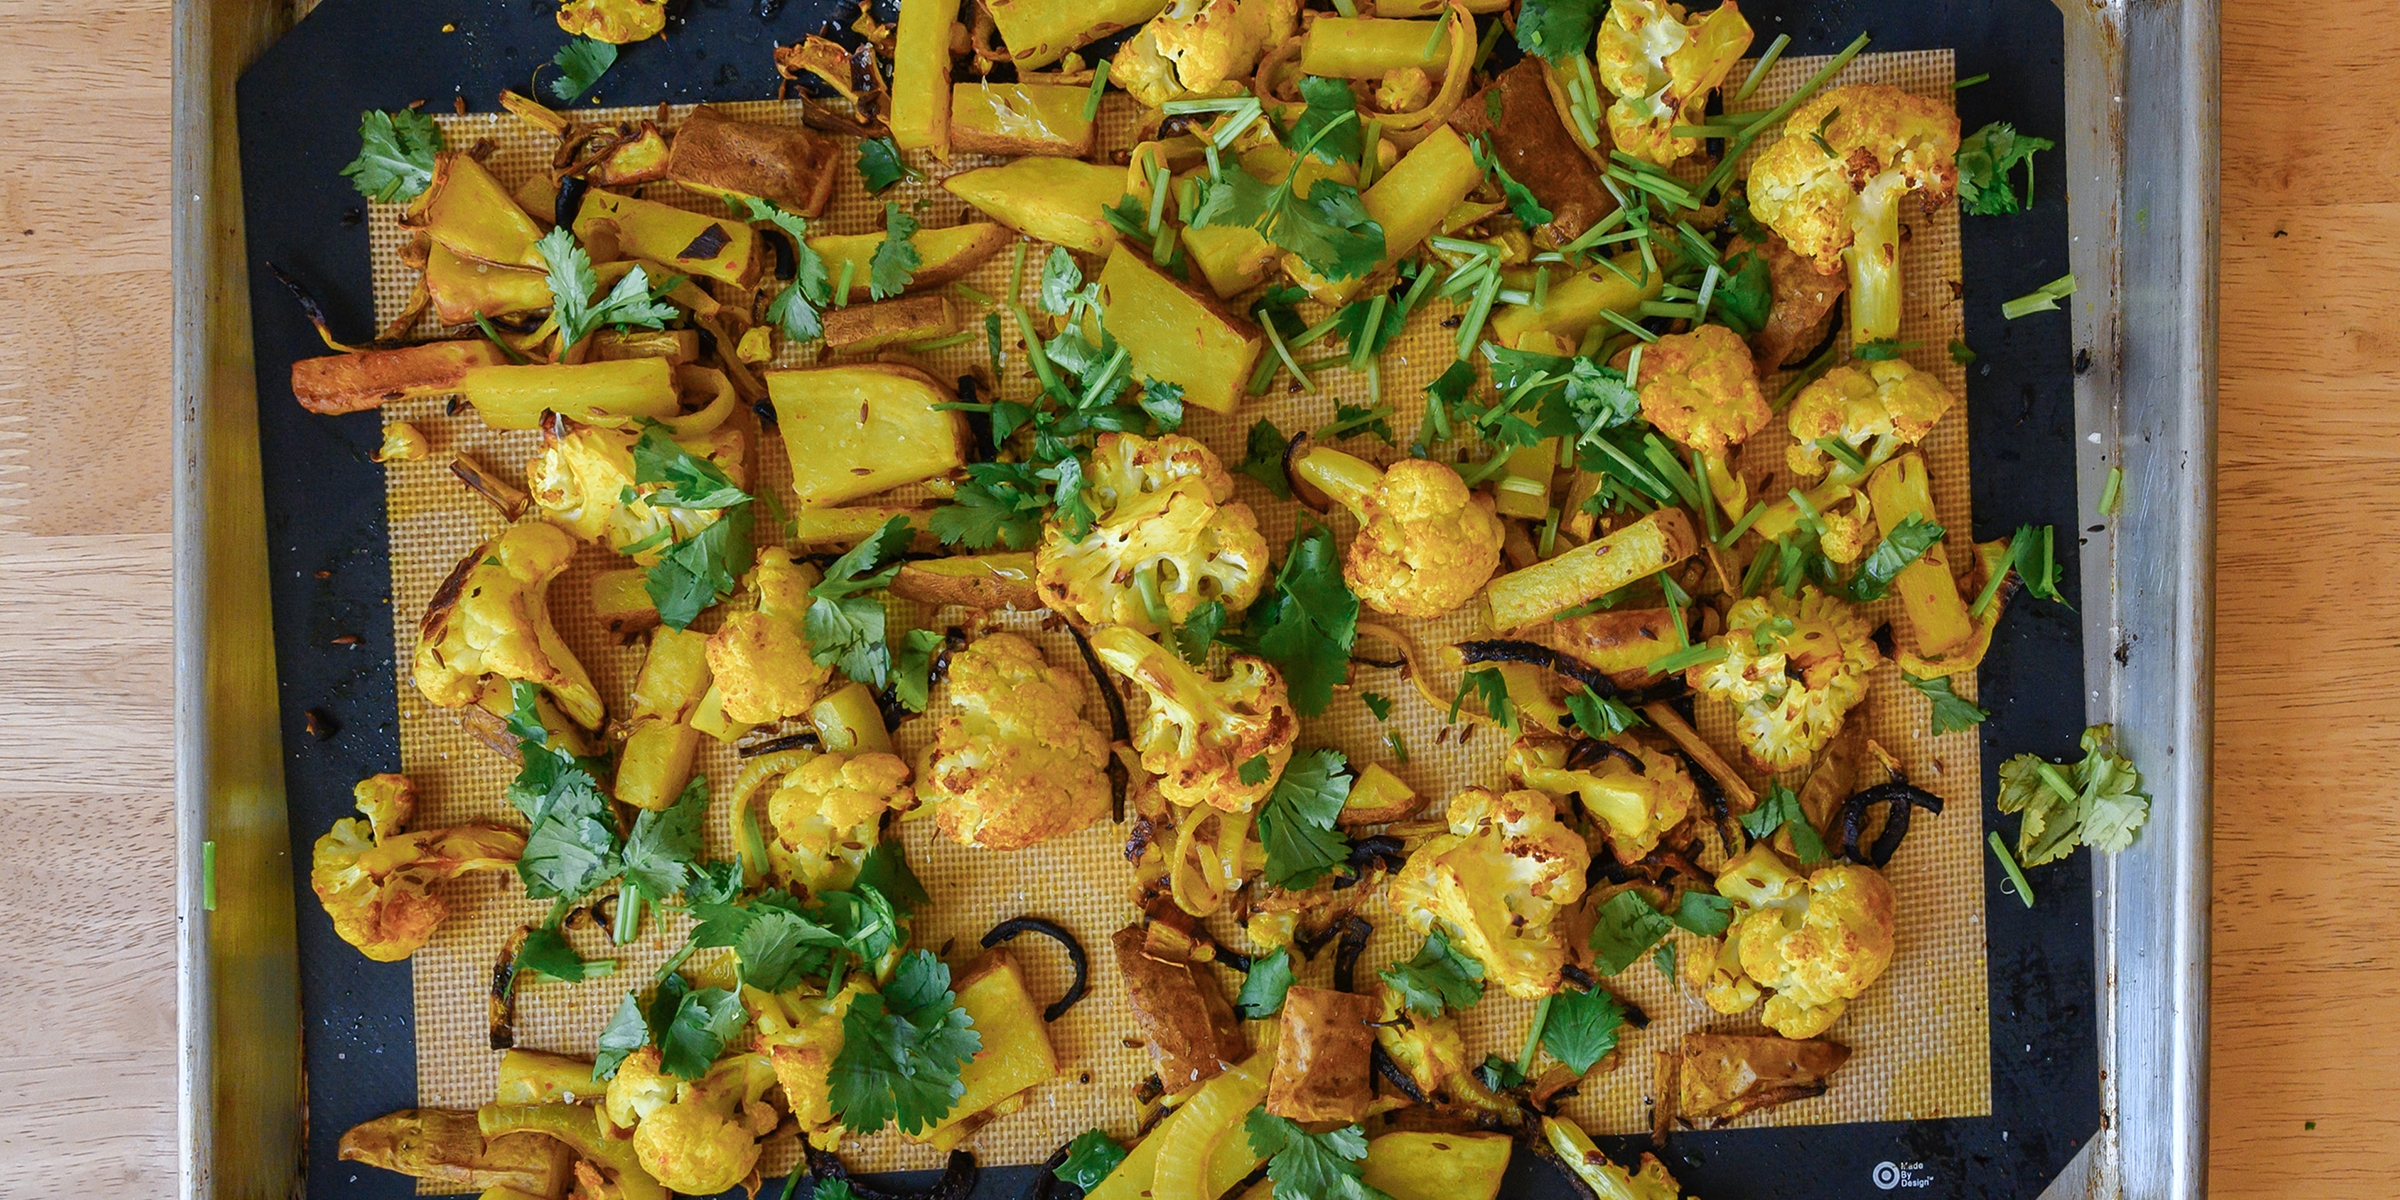 Priya Krishna makes potato and cauliflower aloo gobi all in one sheet pan